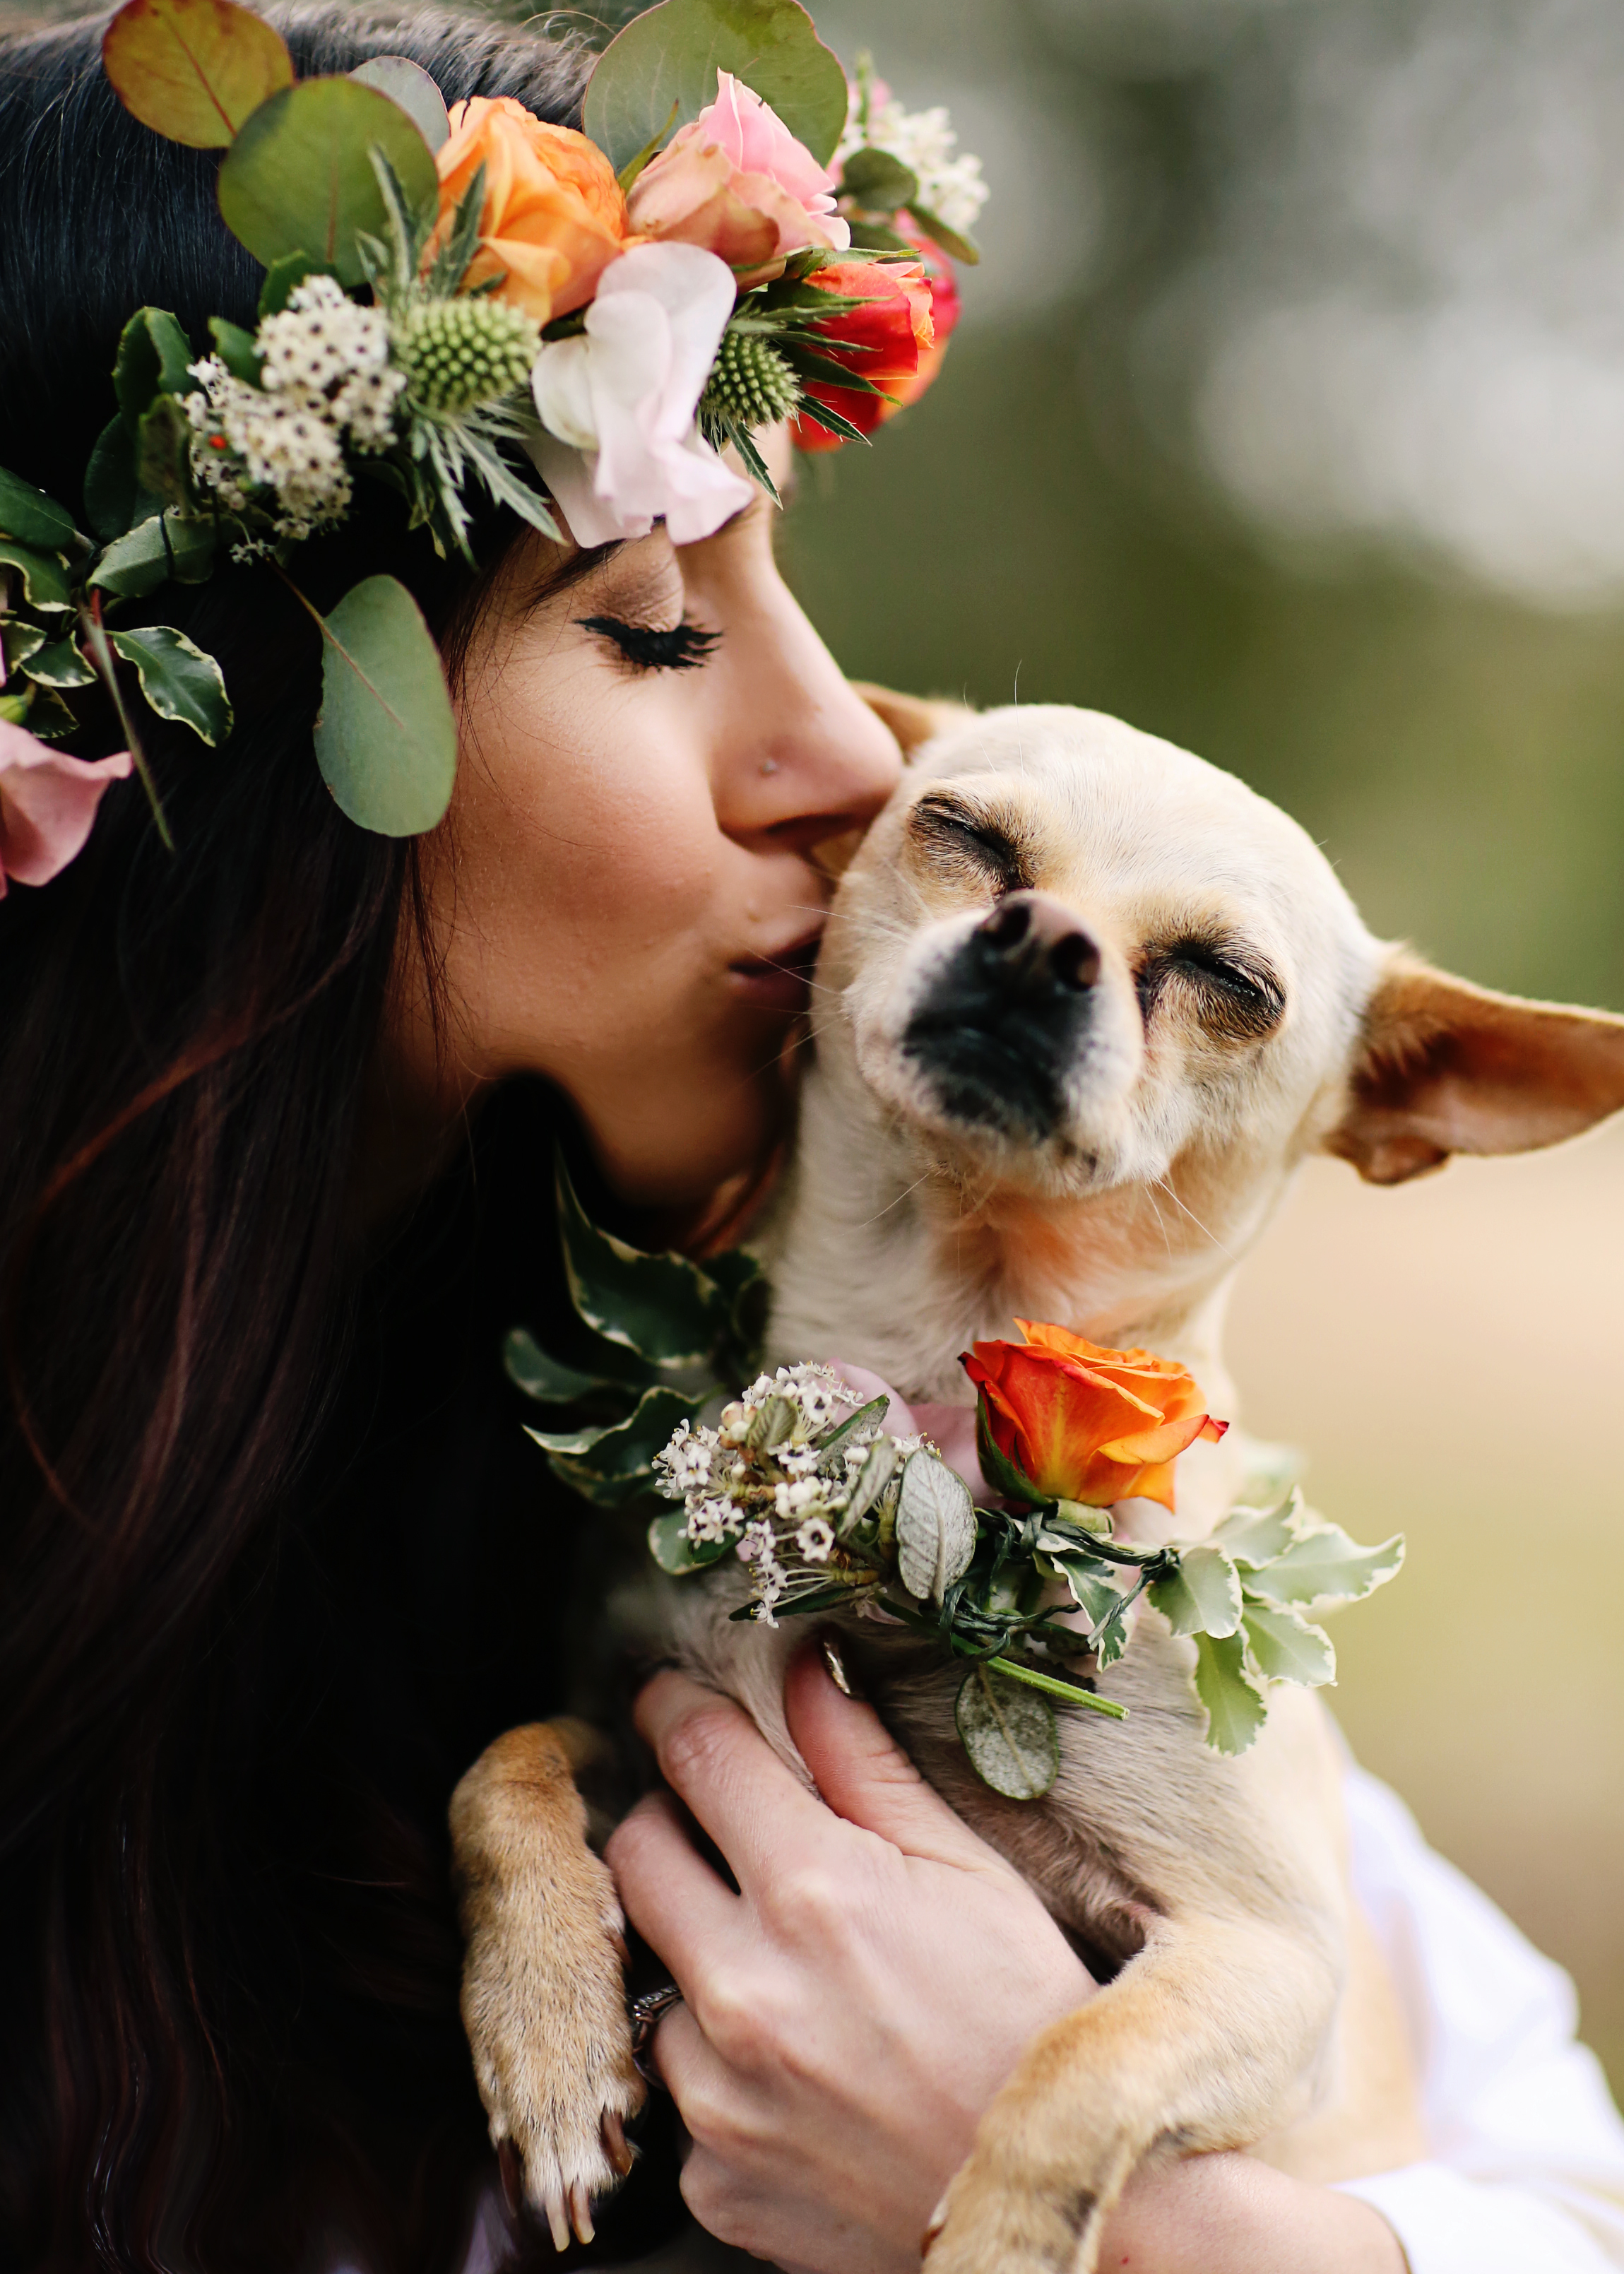 Mother Nature Bride with her dog Kai. She is wearing a floral crown made by Bleudog Floral of Orange County. He dog is wearing a floral color too.